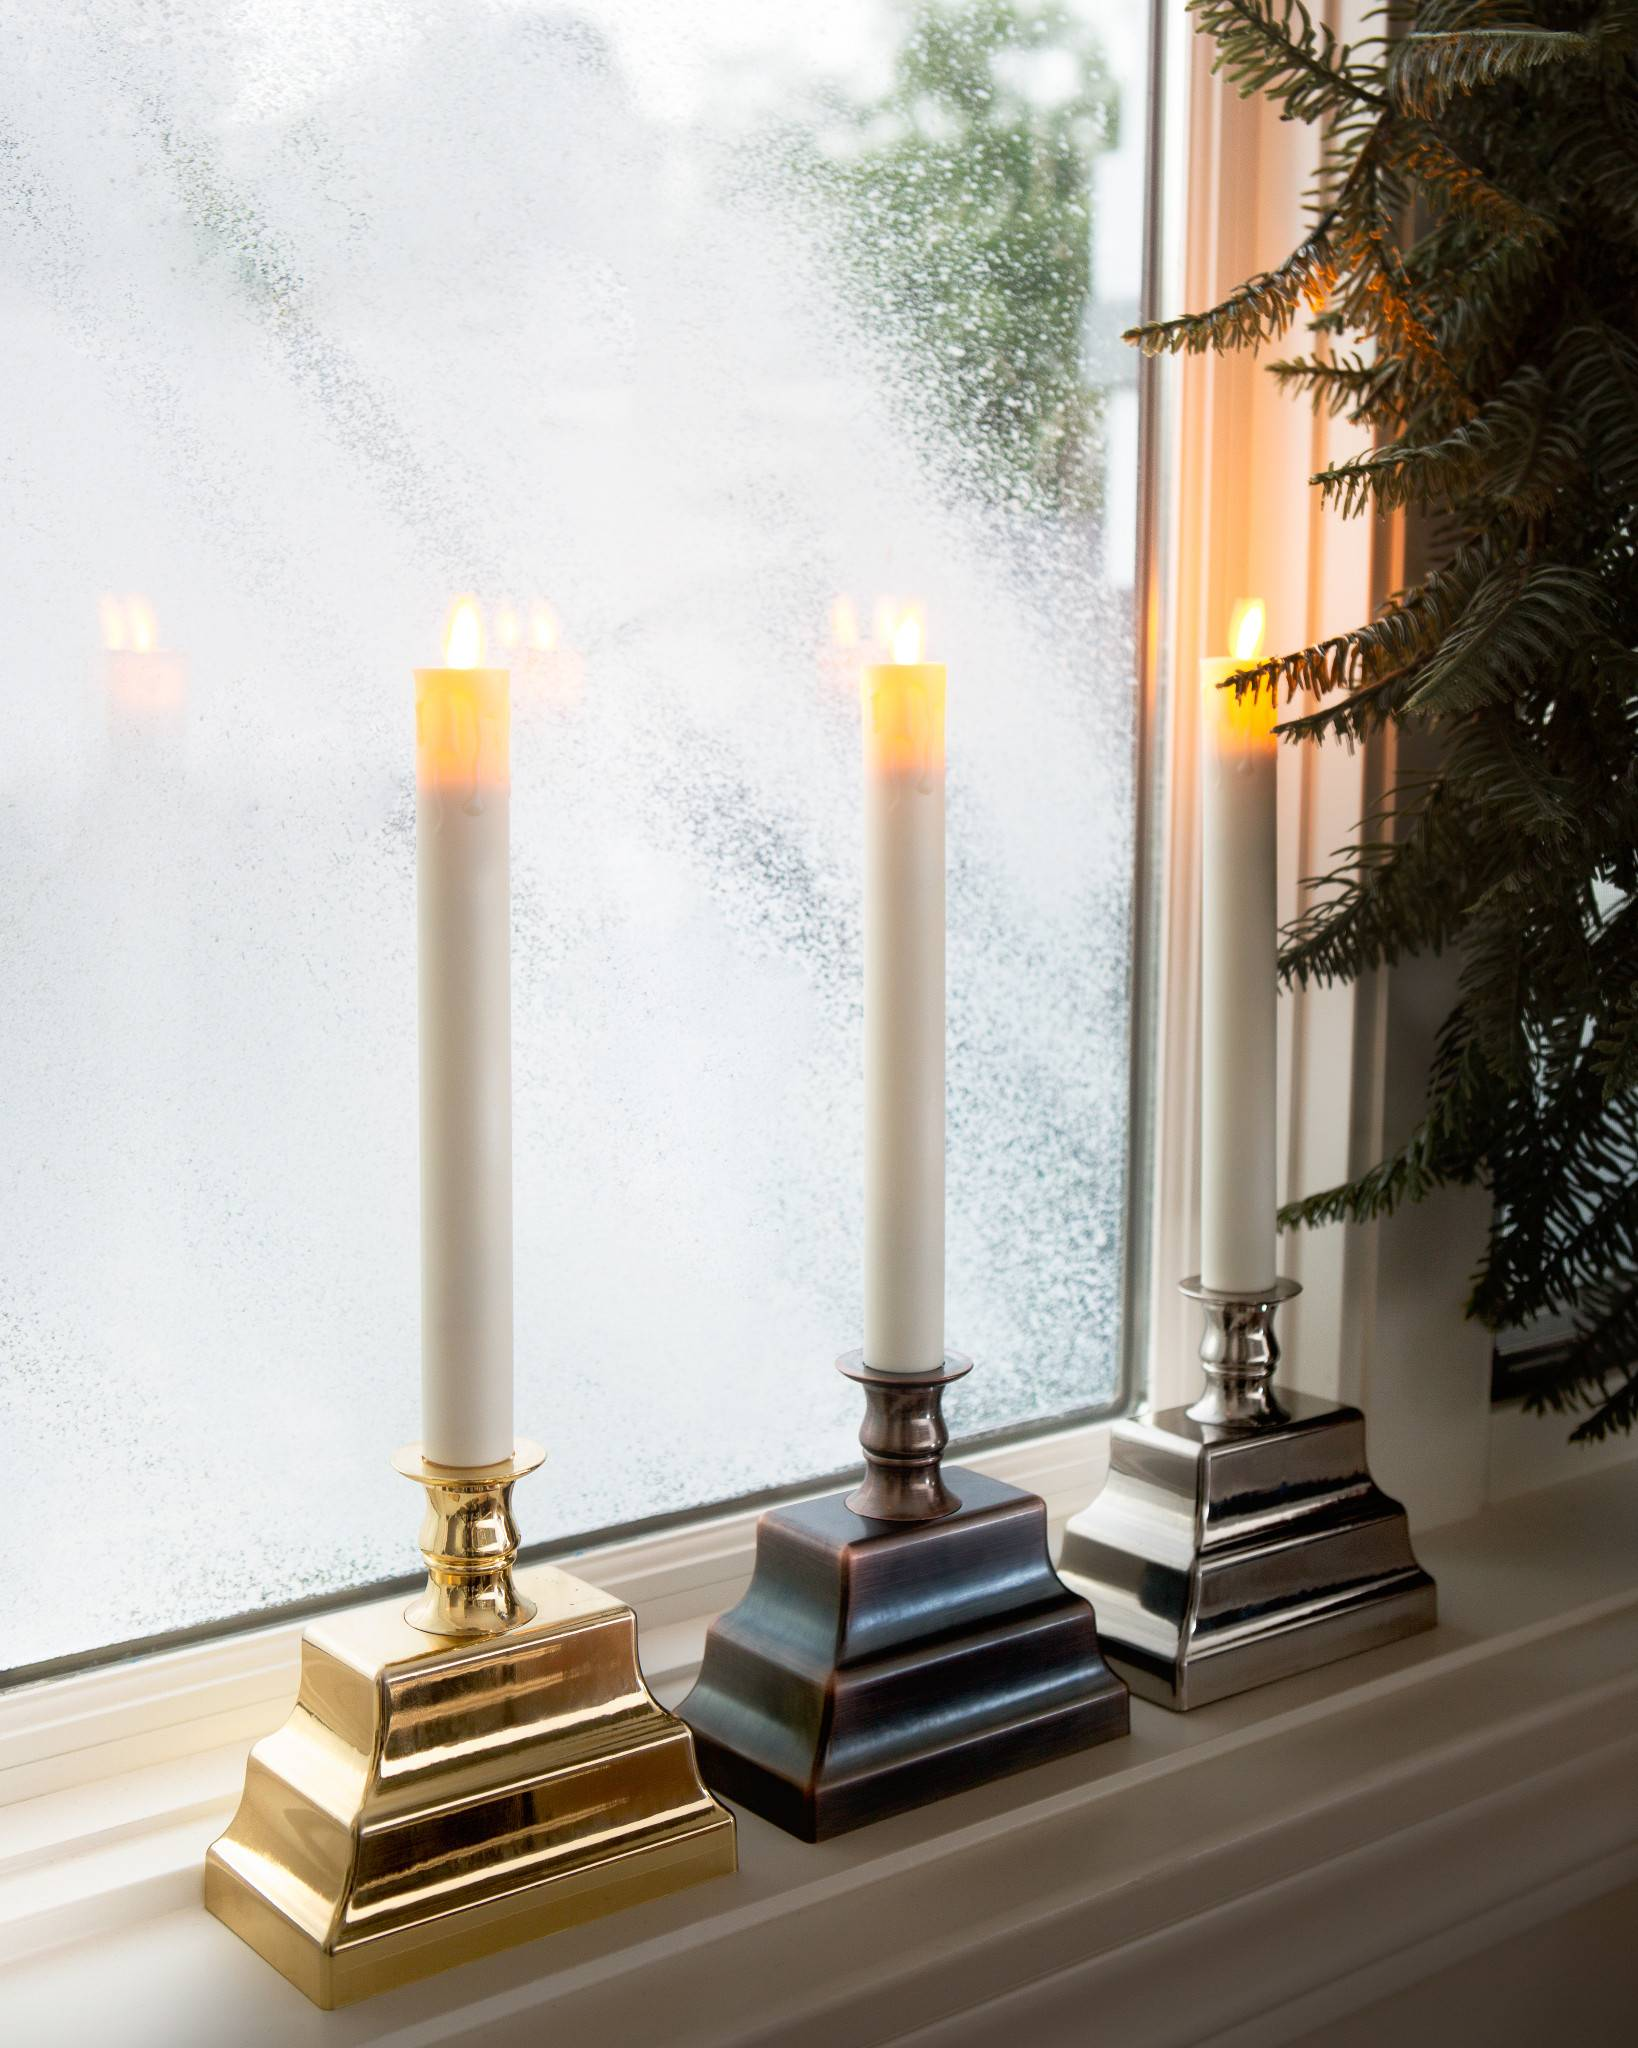 Miracle Flame LED Window Candles, Set of 2 by Balsam Hill